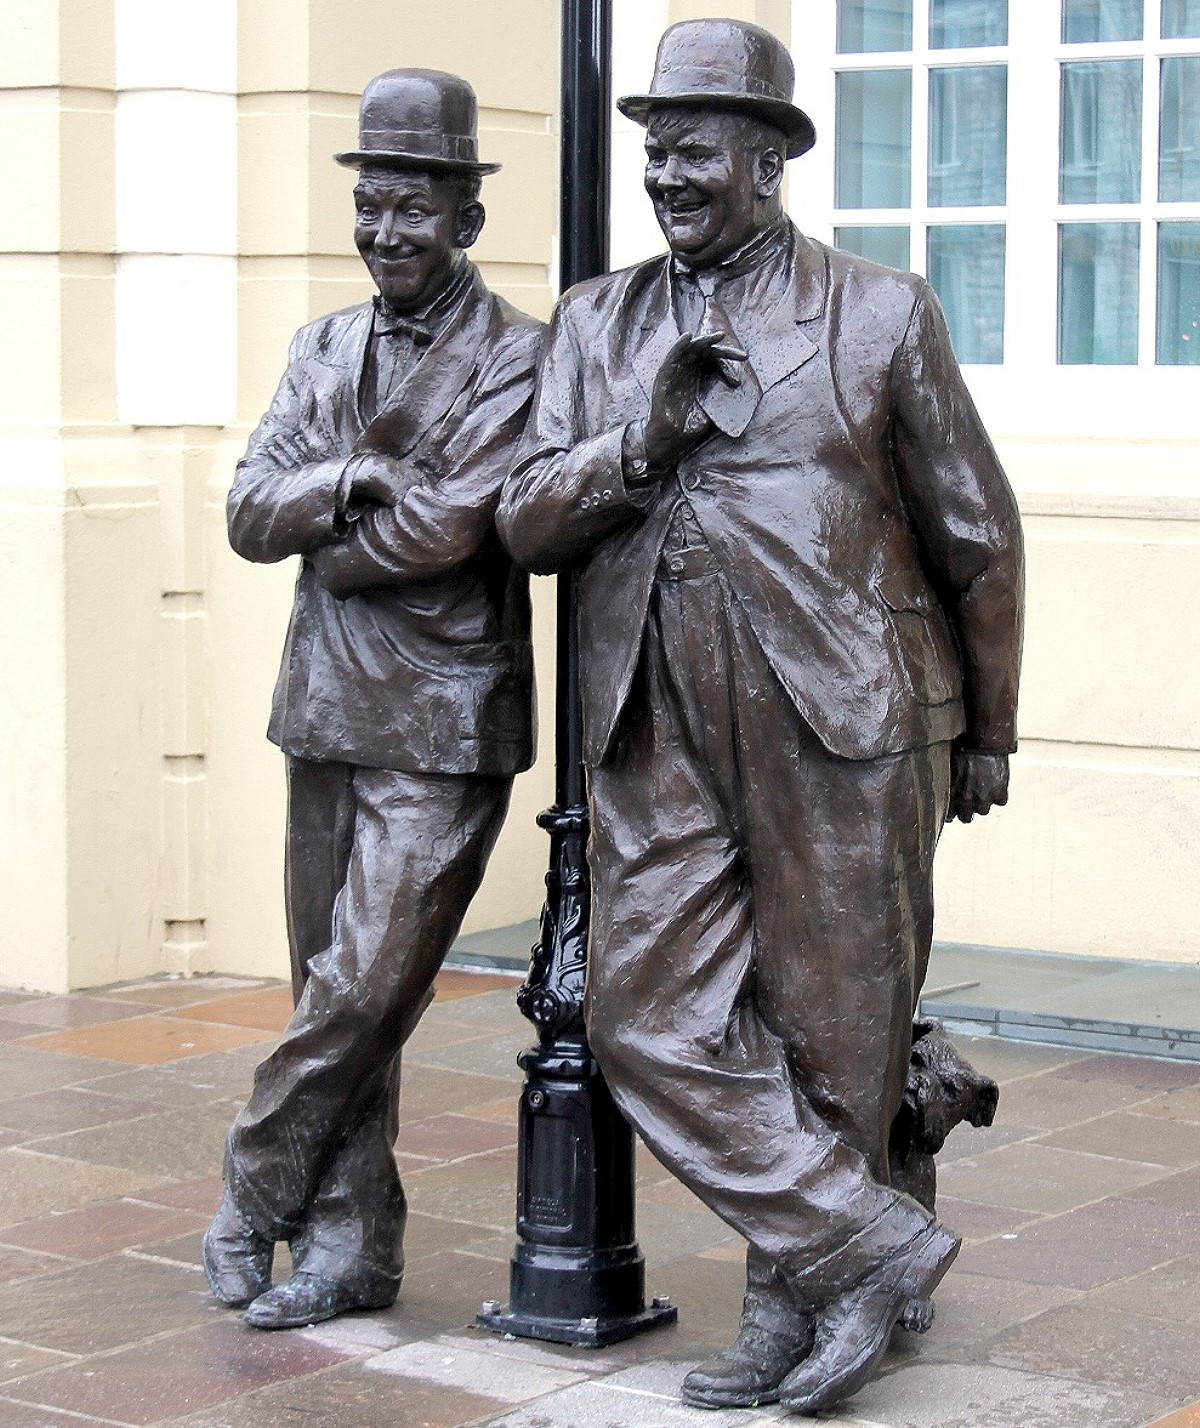 File:Statues of Stan Laurel and Oliver Hardy.jpg - Wikimedia Commons